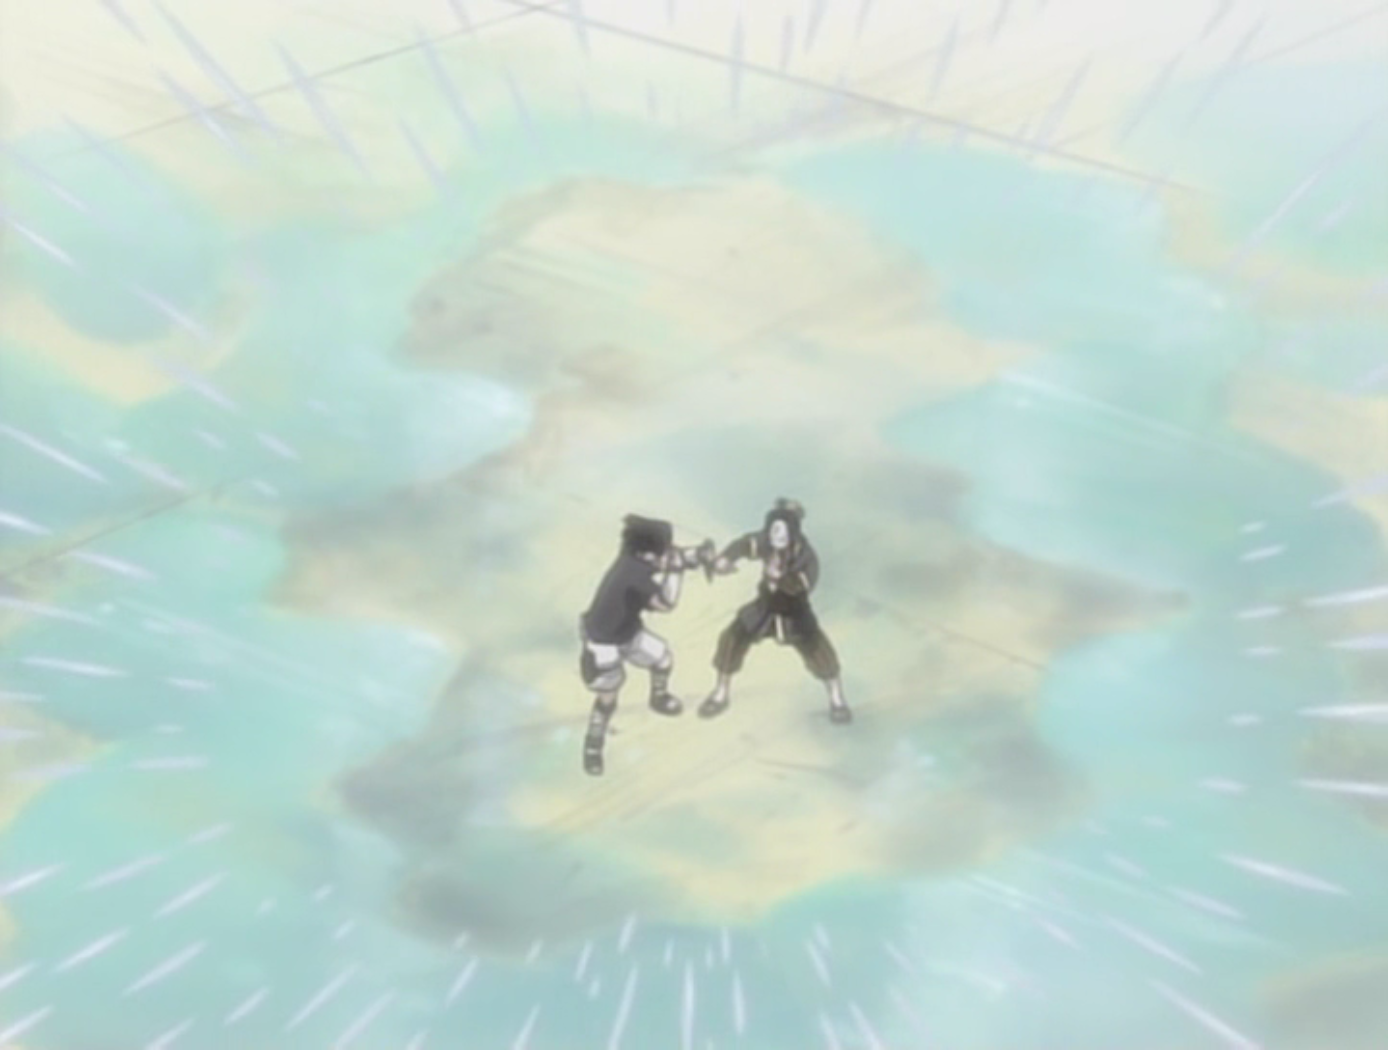 http://img4.wikia.nocookie.net/__cb20150123171529/naruto/images/3/39/Water_Needles_of_Death.png